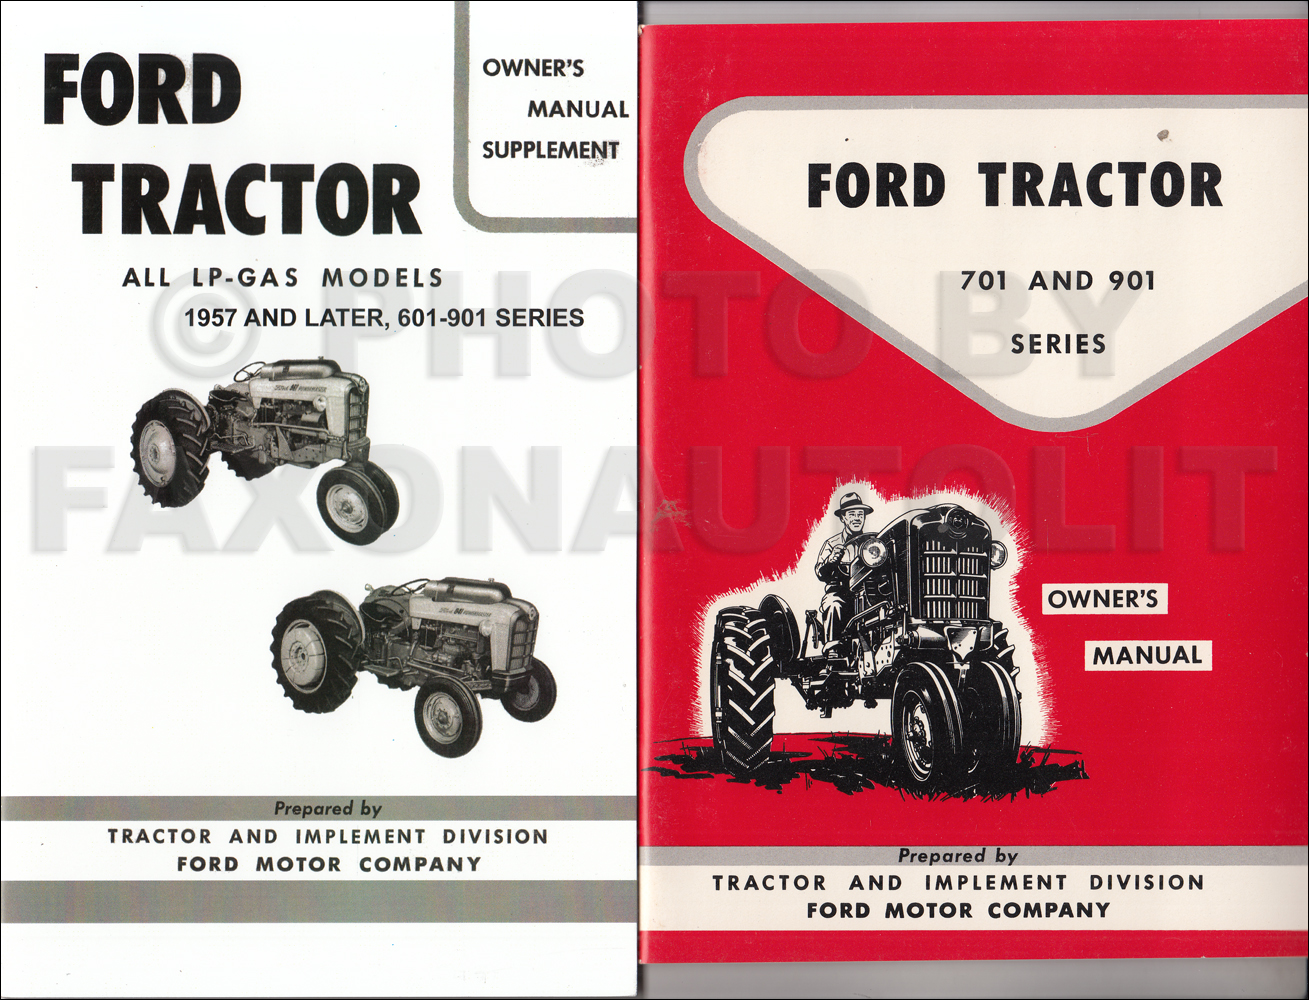 1962 Ford Tractor Wiring Diagram Libraries 55 600 6v Cd 1955 1960 Thru 901 Series Repair Shop Manual1957 701